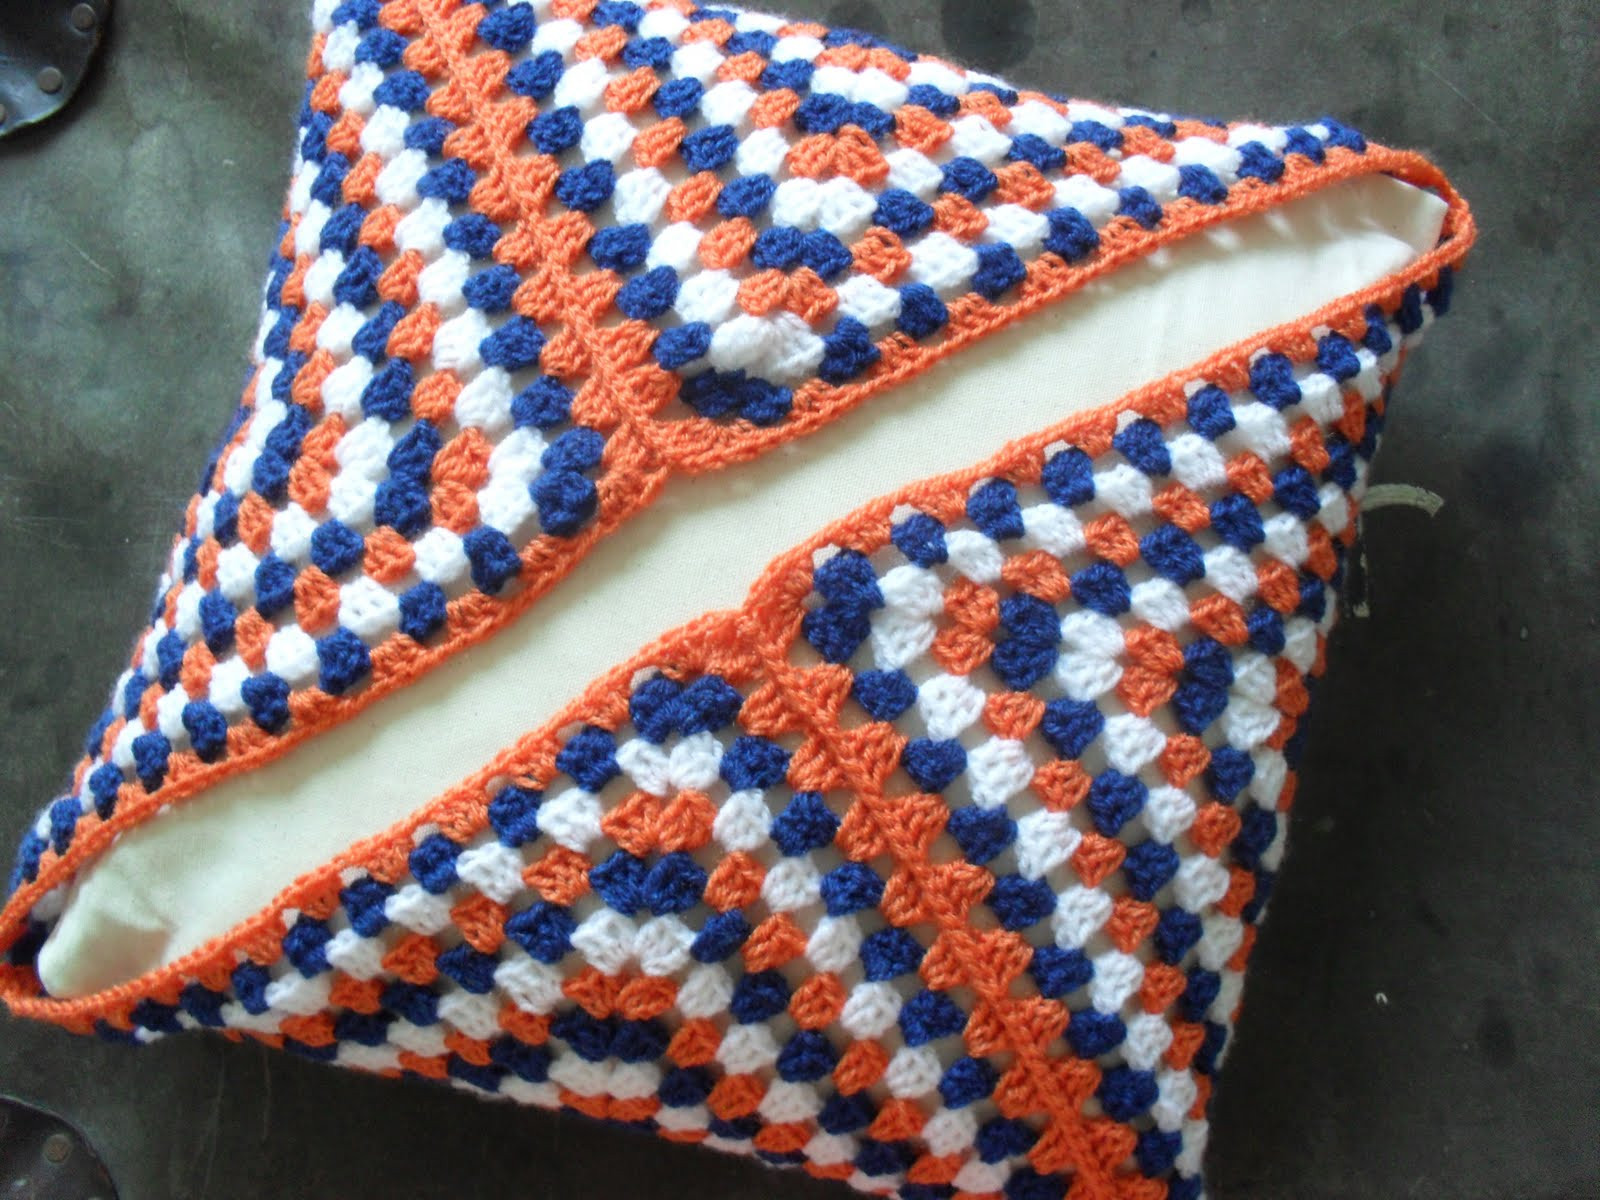 Luxury Crochet Granny Square Cushion Cover Crochet Pillow Covers Of Incredible 47 Pics Crochet Pillow Covers